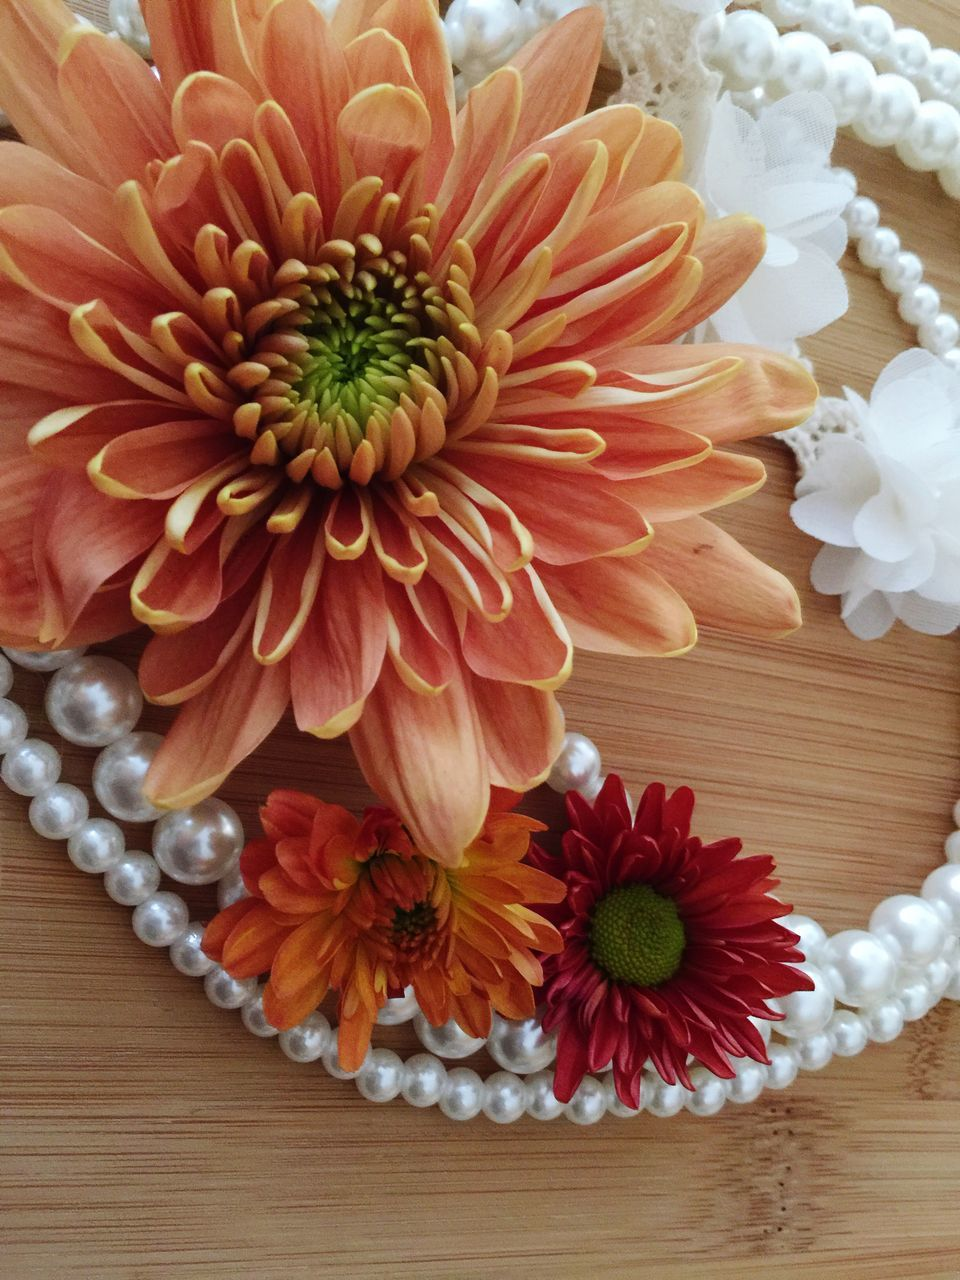 flower, petal, freshness, beauty in nature, flower head, nature, table, no people, fragility, growth, indoors, blooming, close-up, day